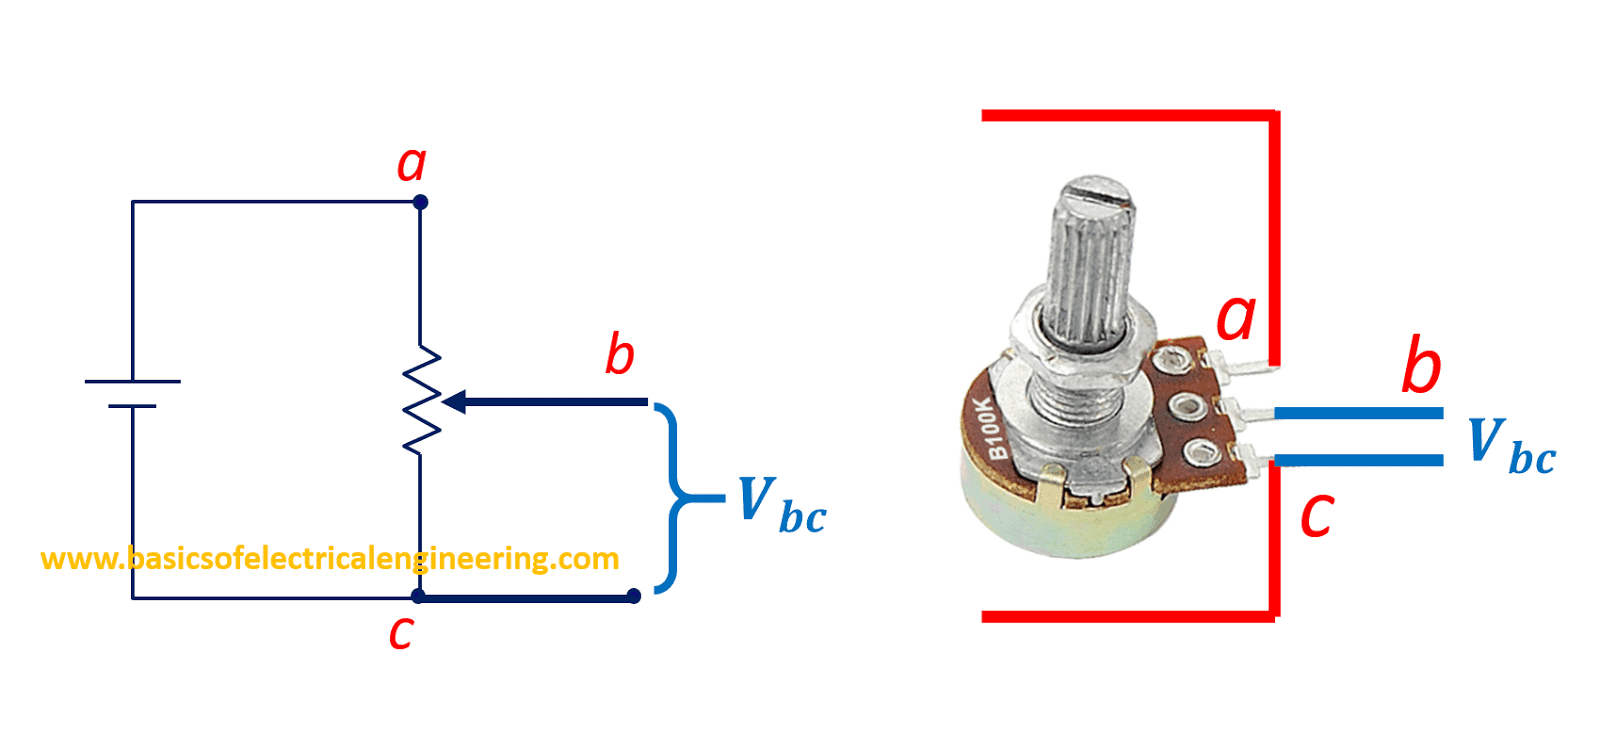 Basics of Potentiometer - Basics of Electrical Engineering